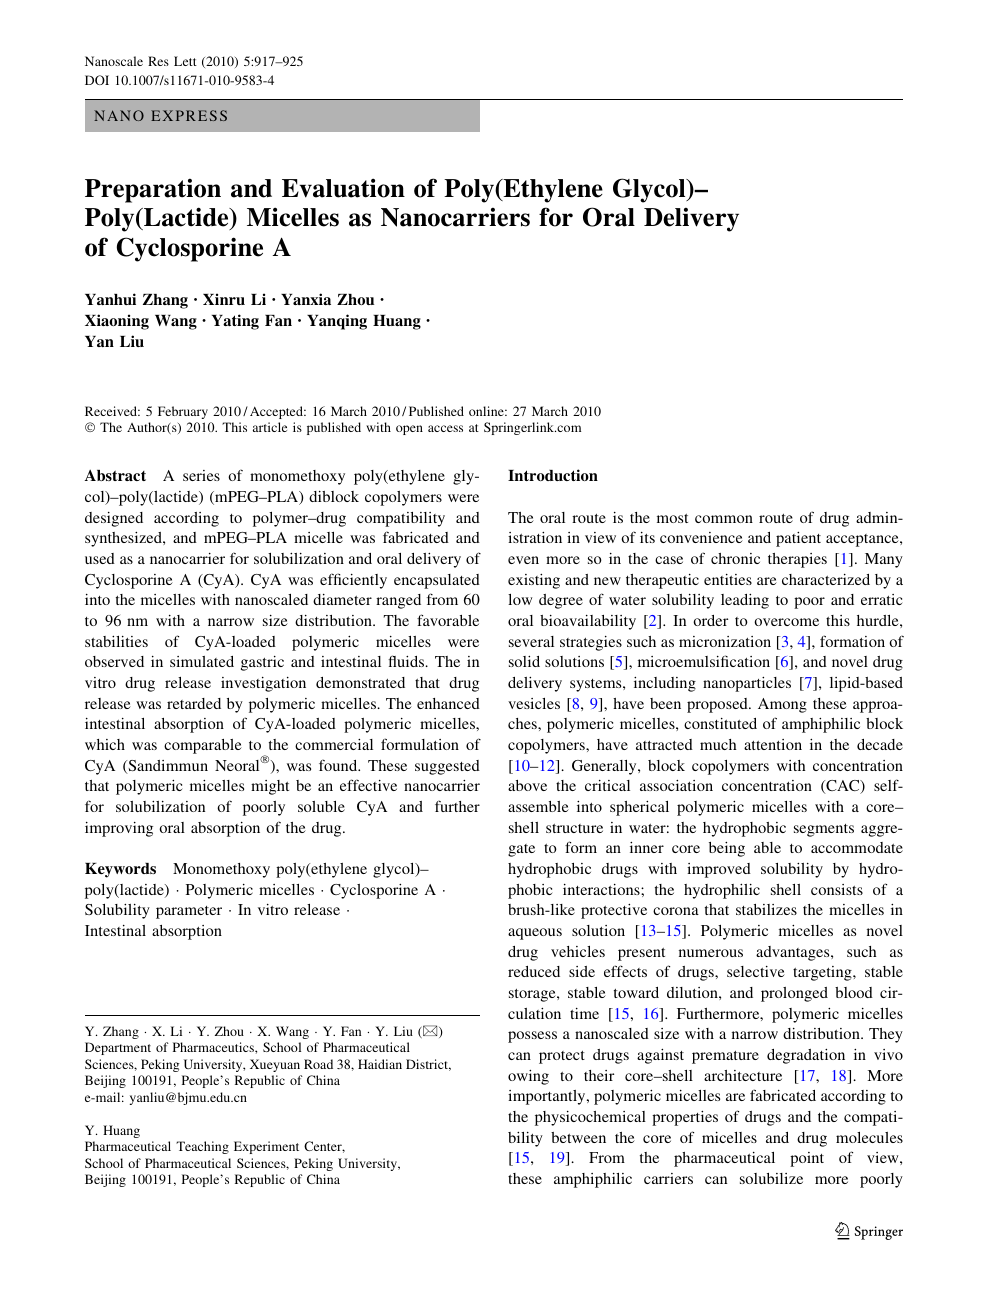 Preparation and Evaluation of Poly(Ethylene Glycol)–Poly